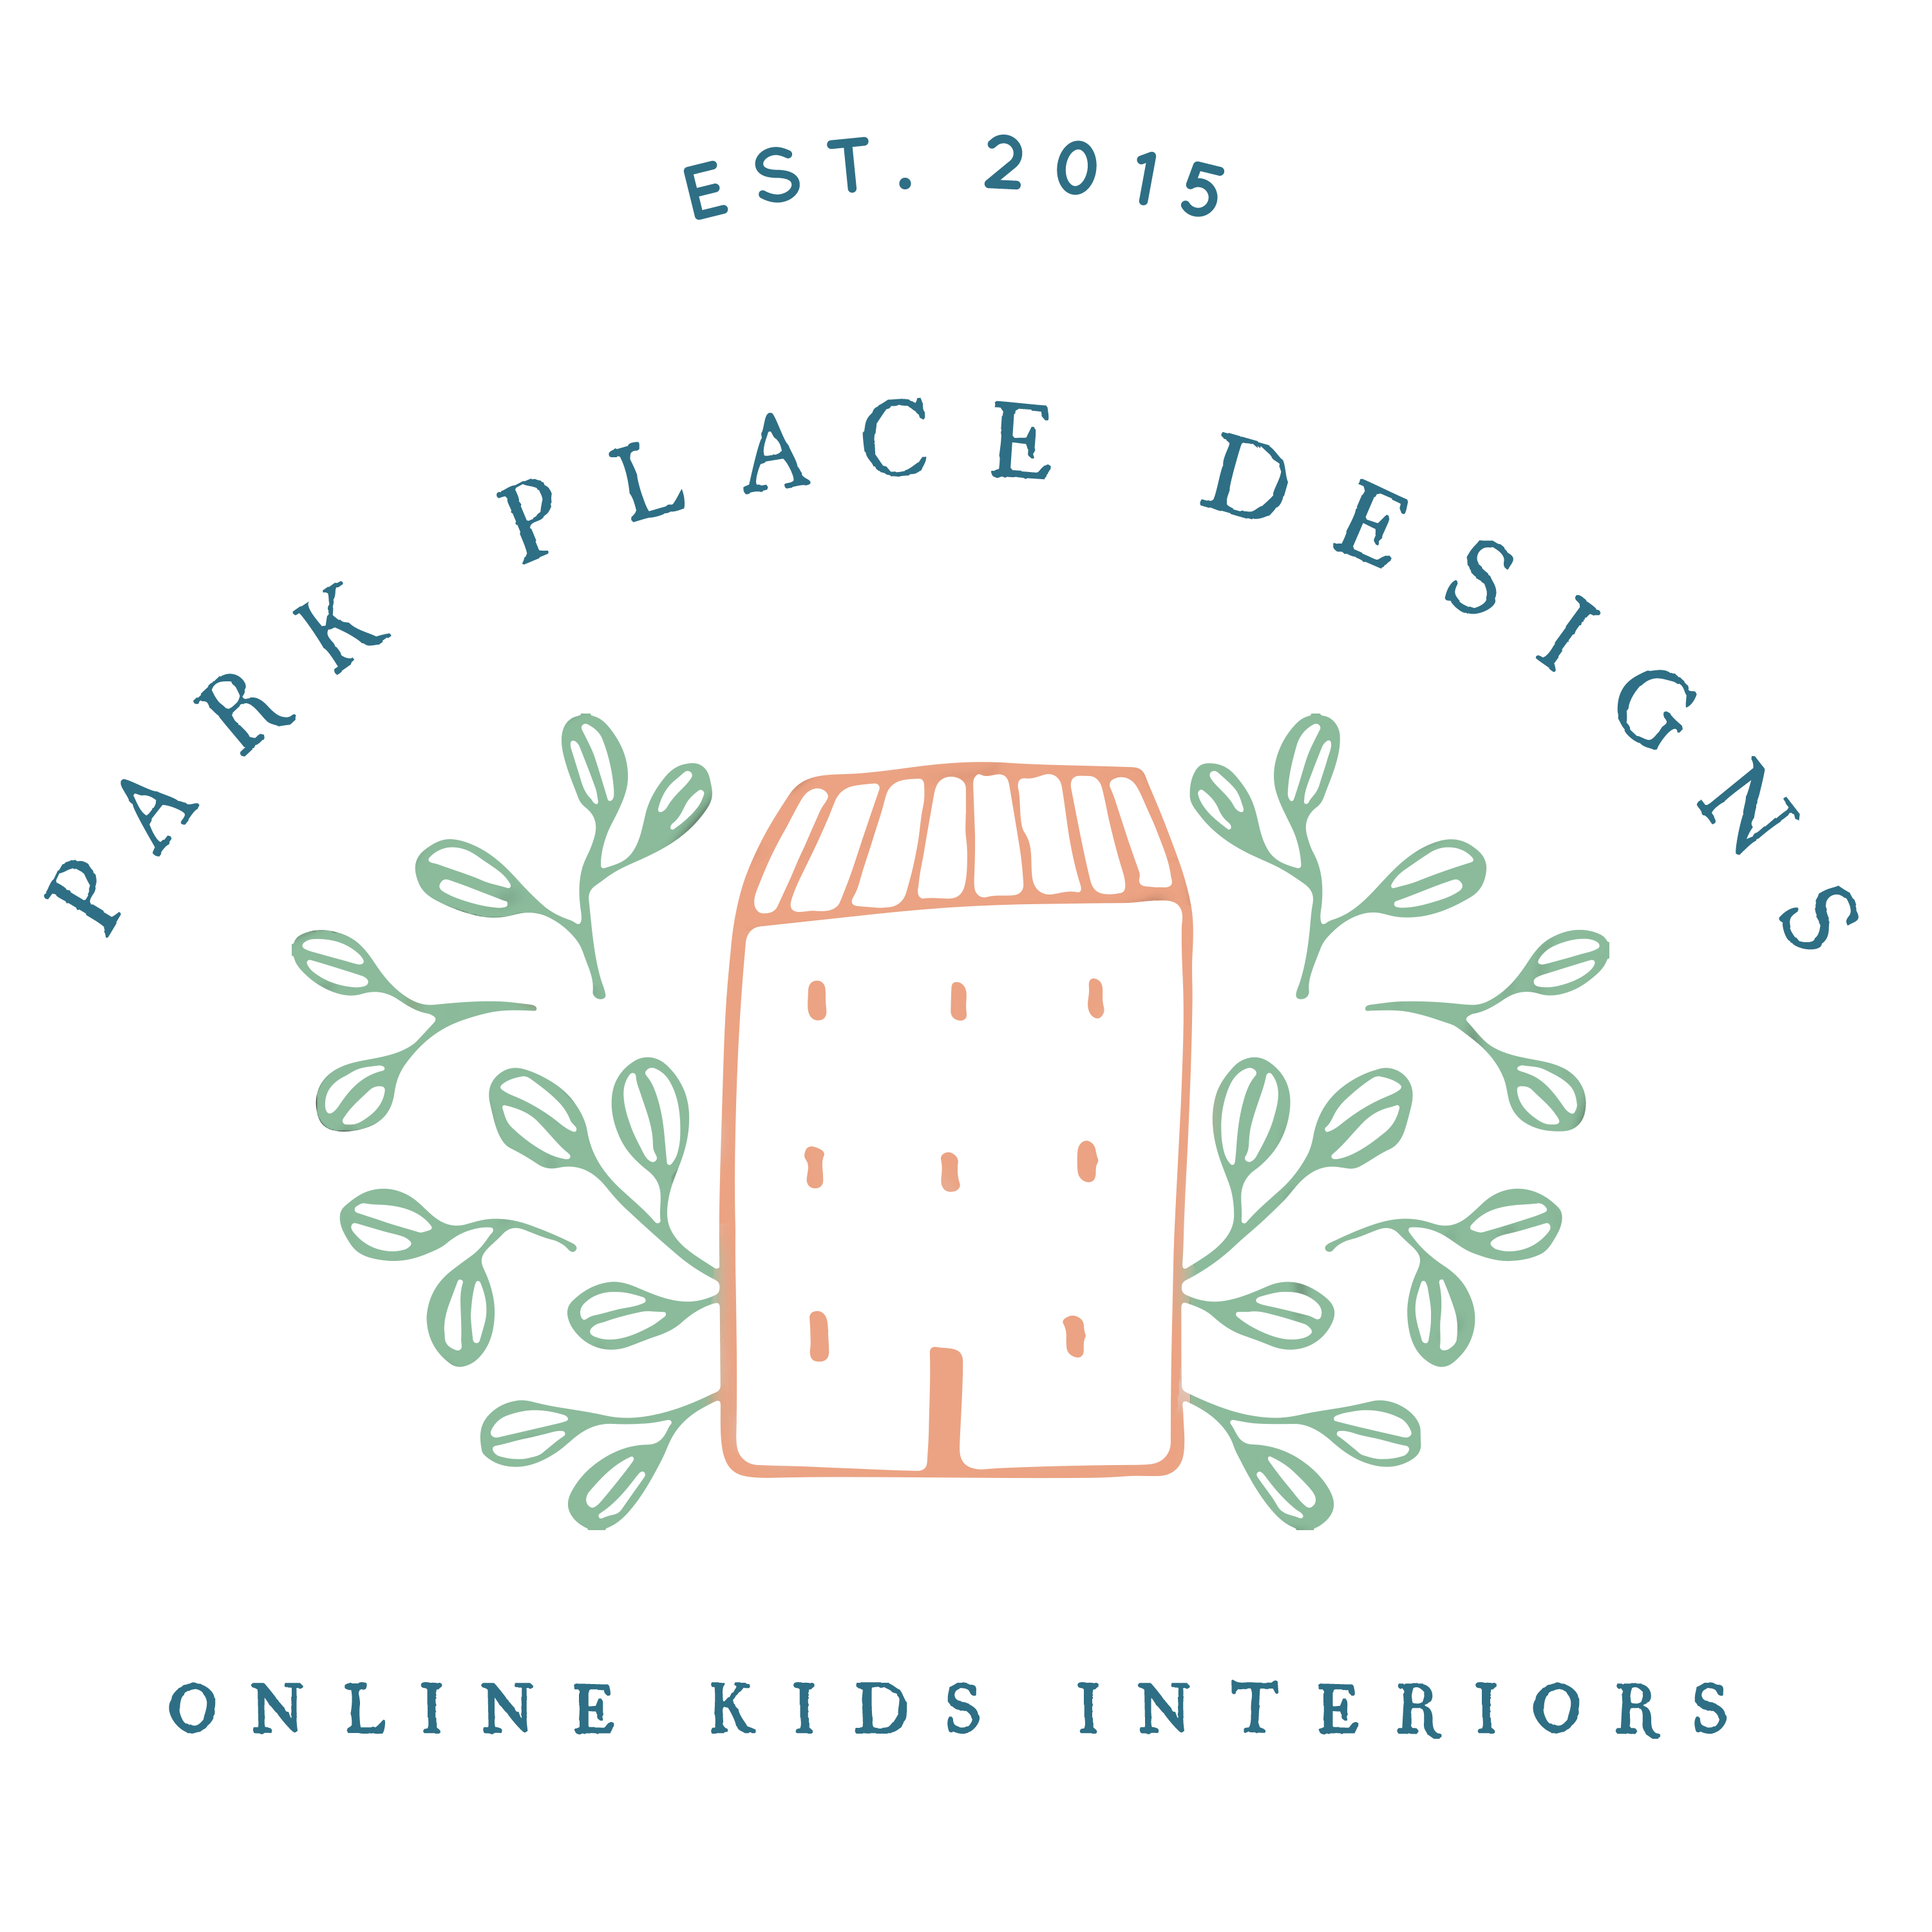 Online interior design sign in Interior design welcome packet